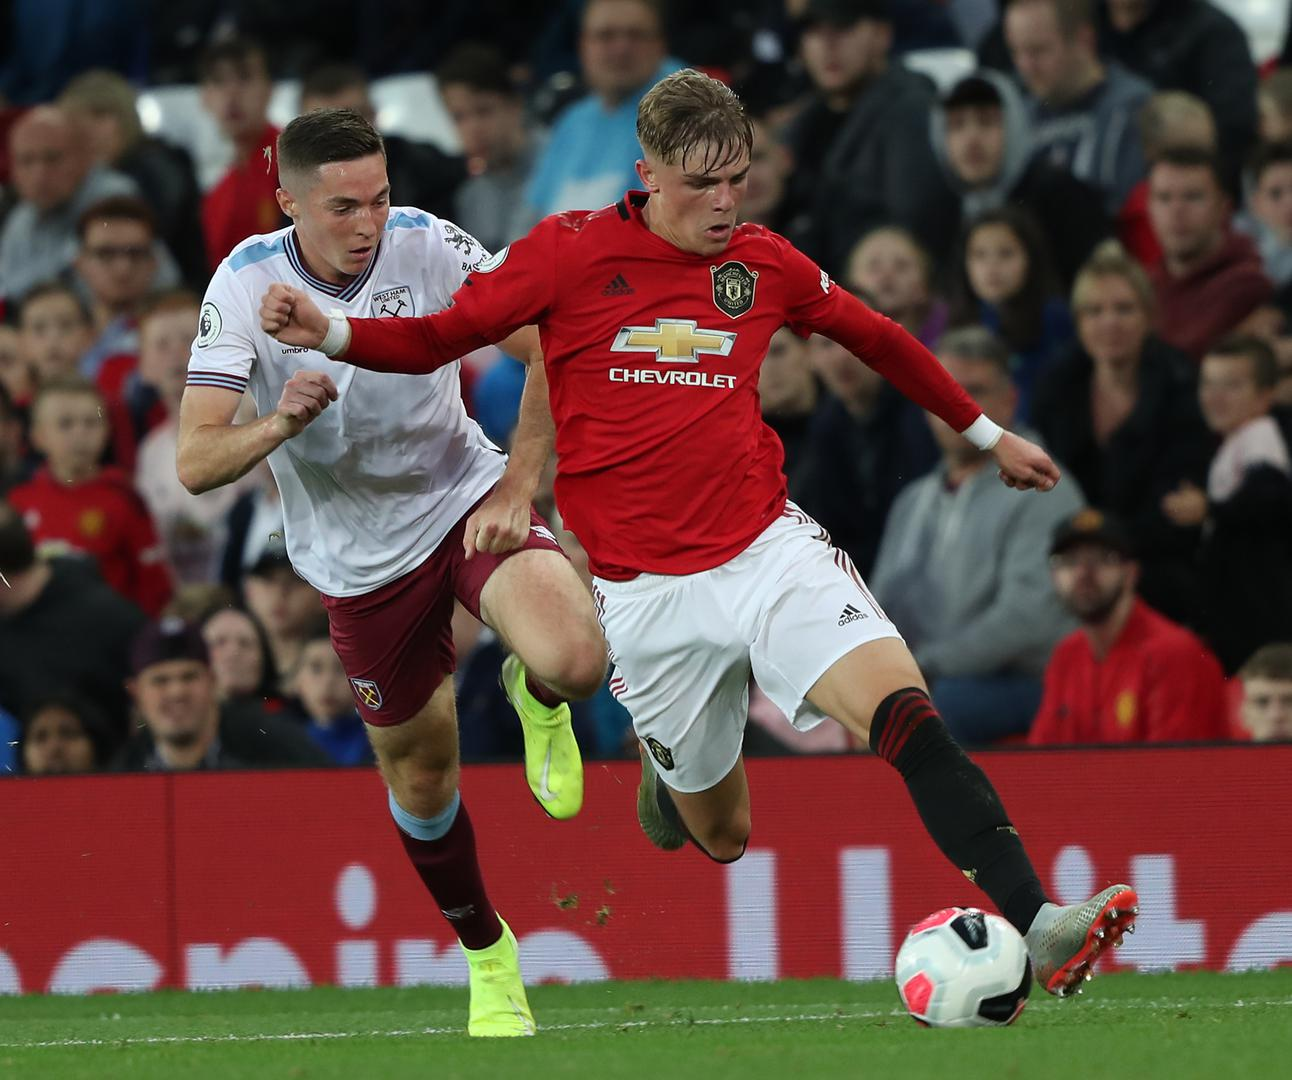 Brandon Williams playing for Manchester United Under-23s against West Ham United